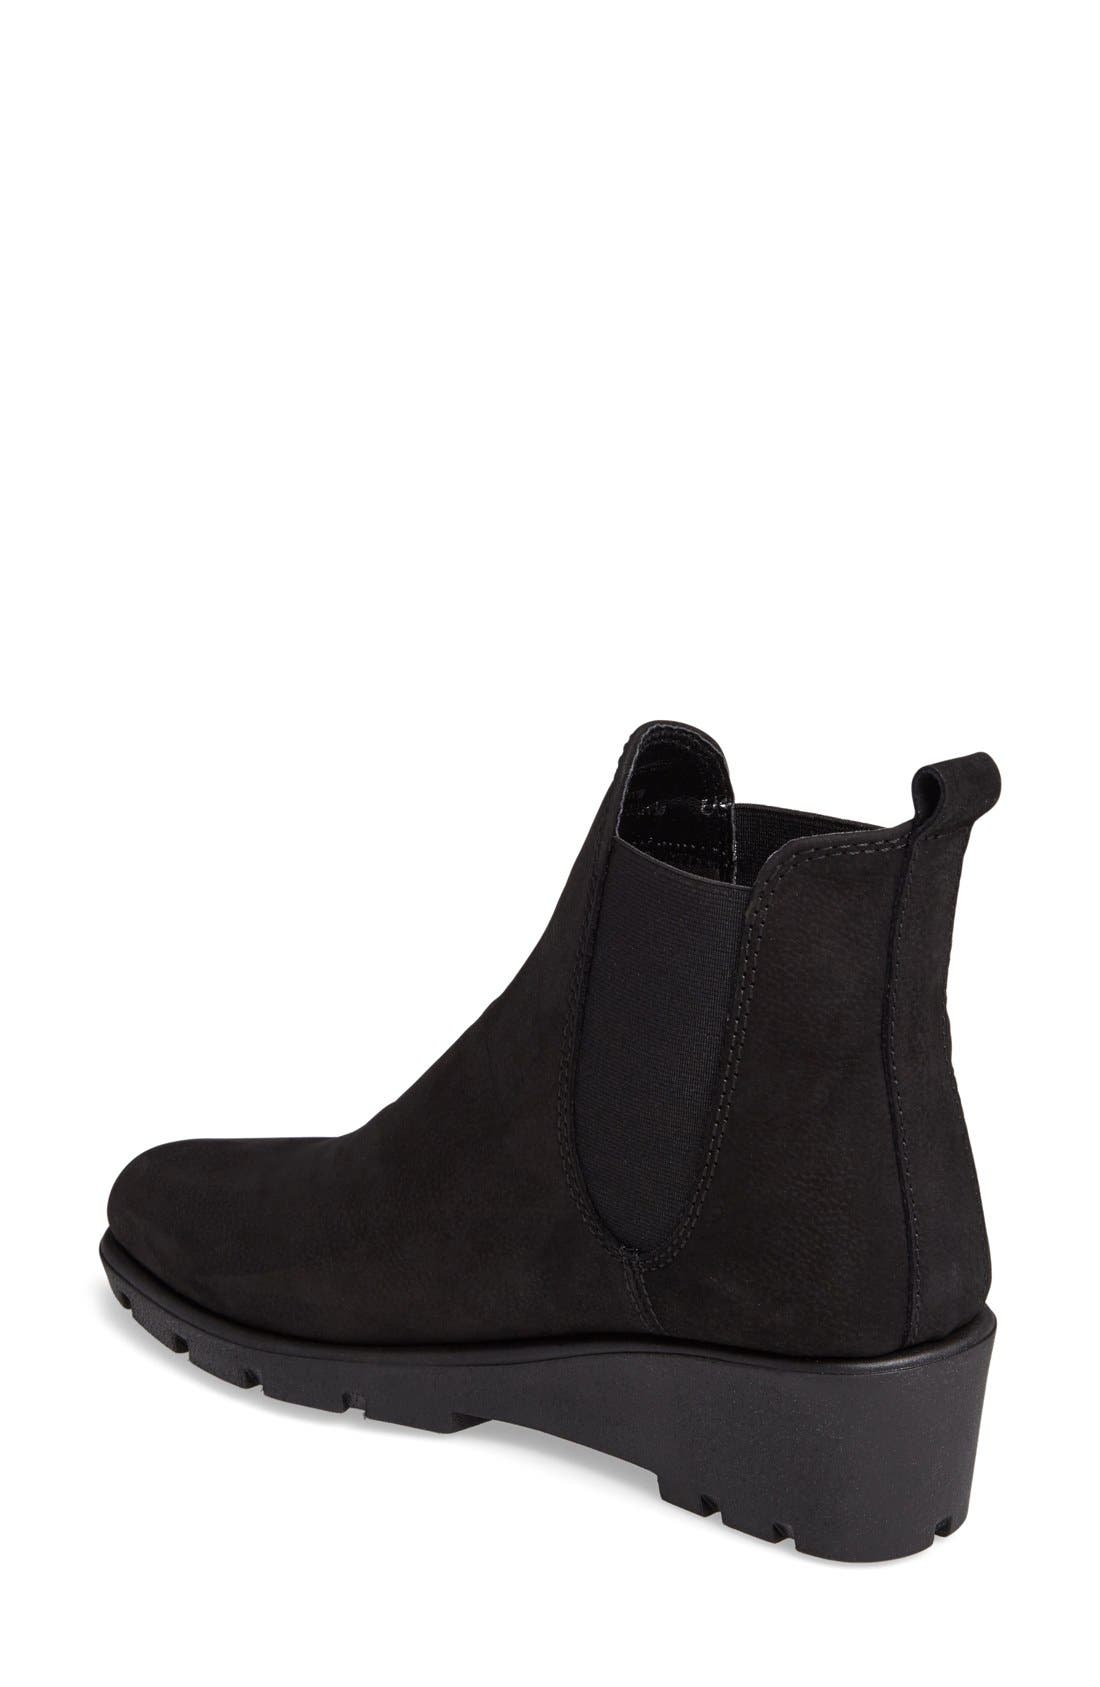 Alternate Image 2  - The FLEXX Slimmer Chelsea Wedge Boot (Women)